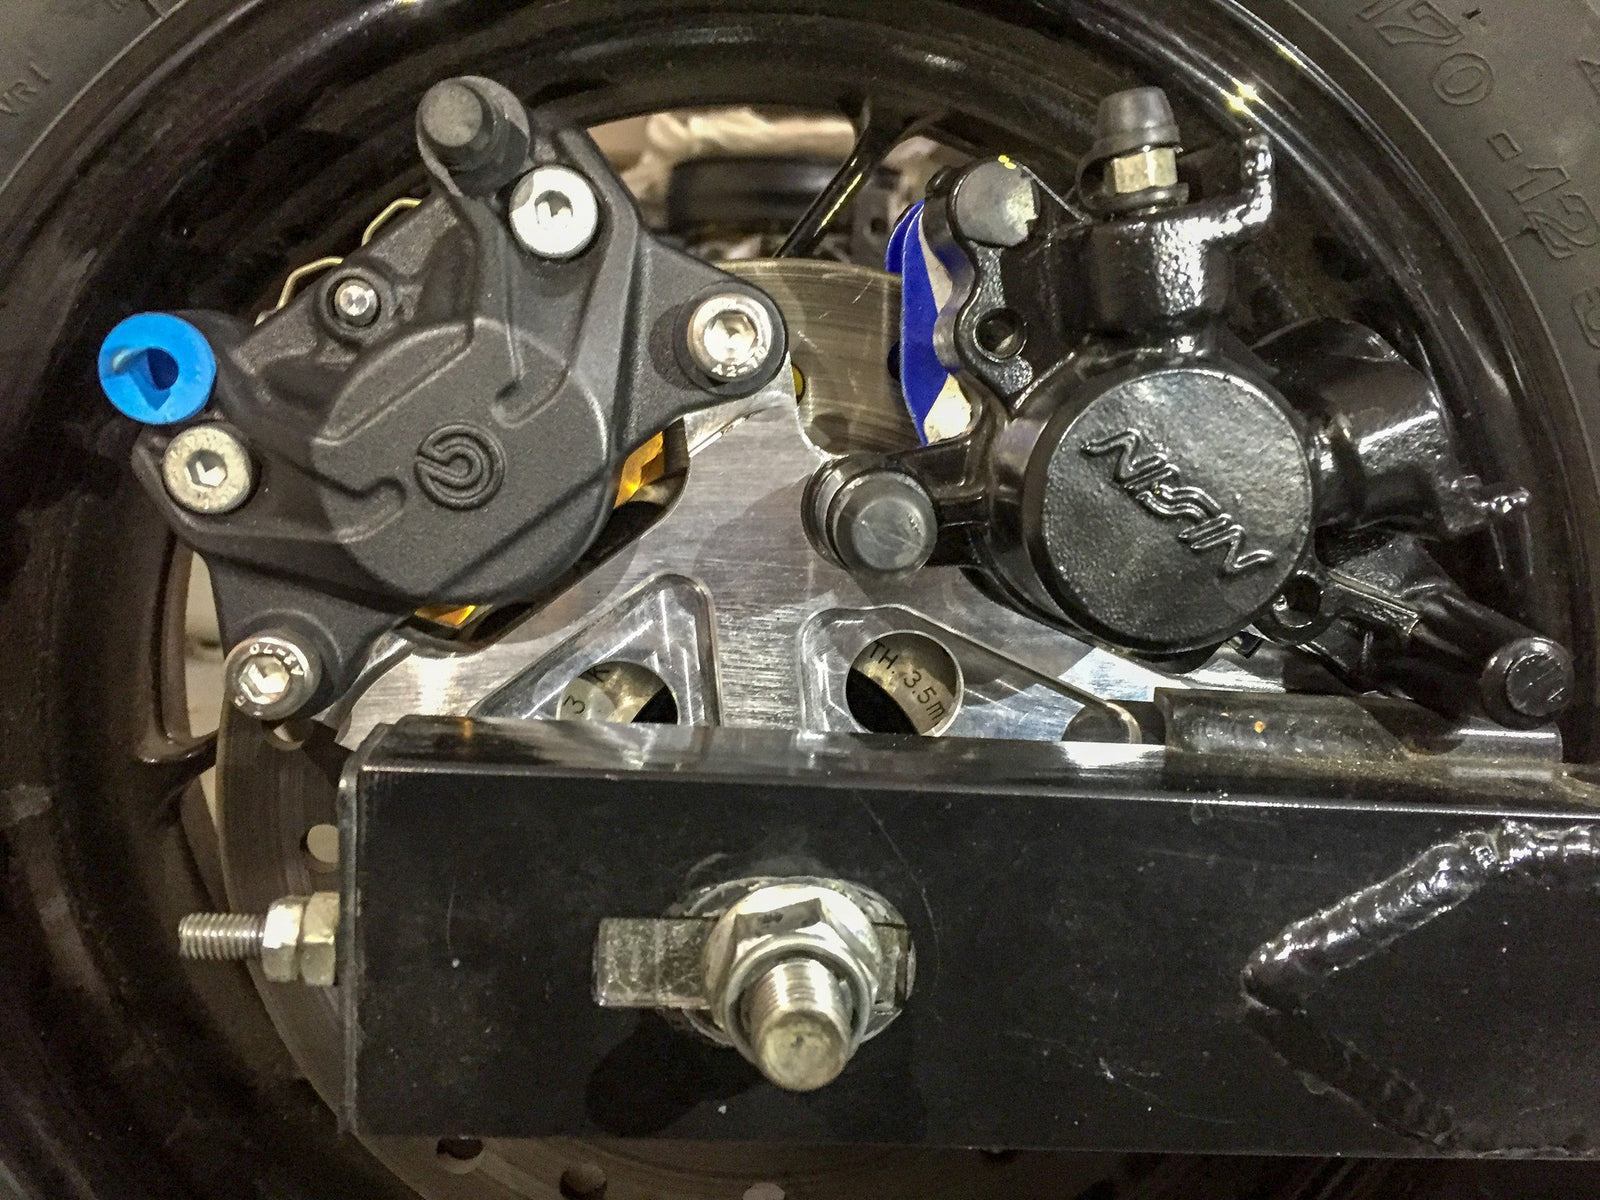 Perfect Stranger Honda Grom OEM Handbrake Complete Kit - Tacticalmindz.com